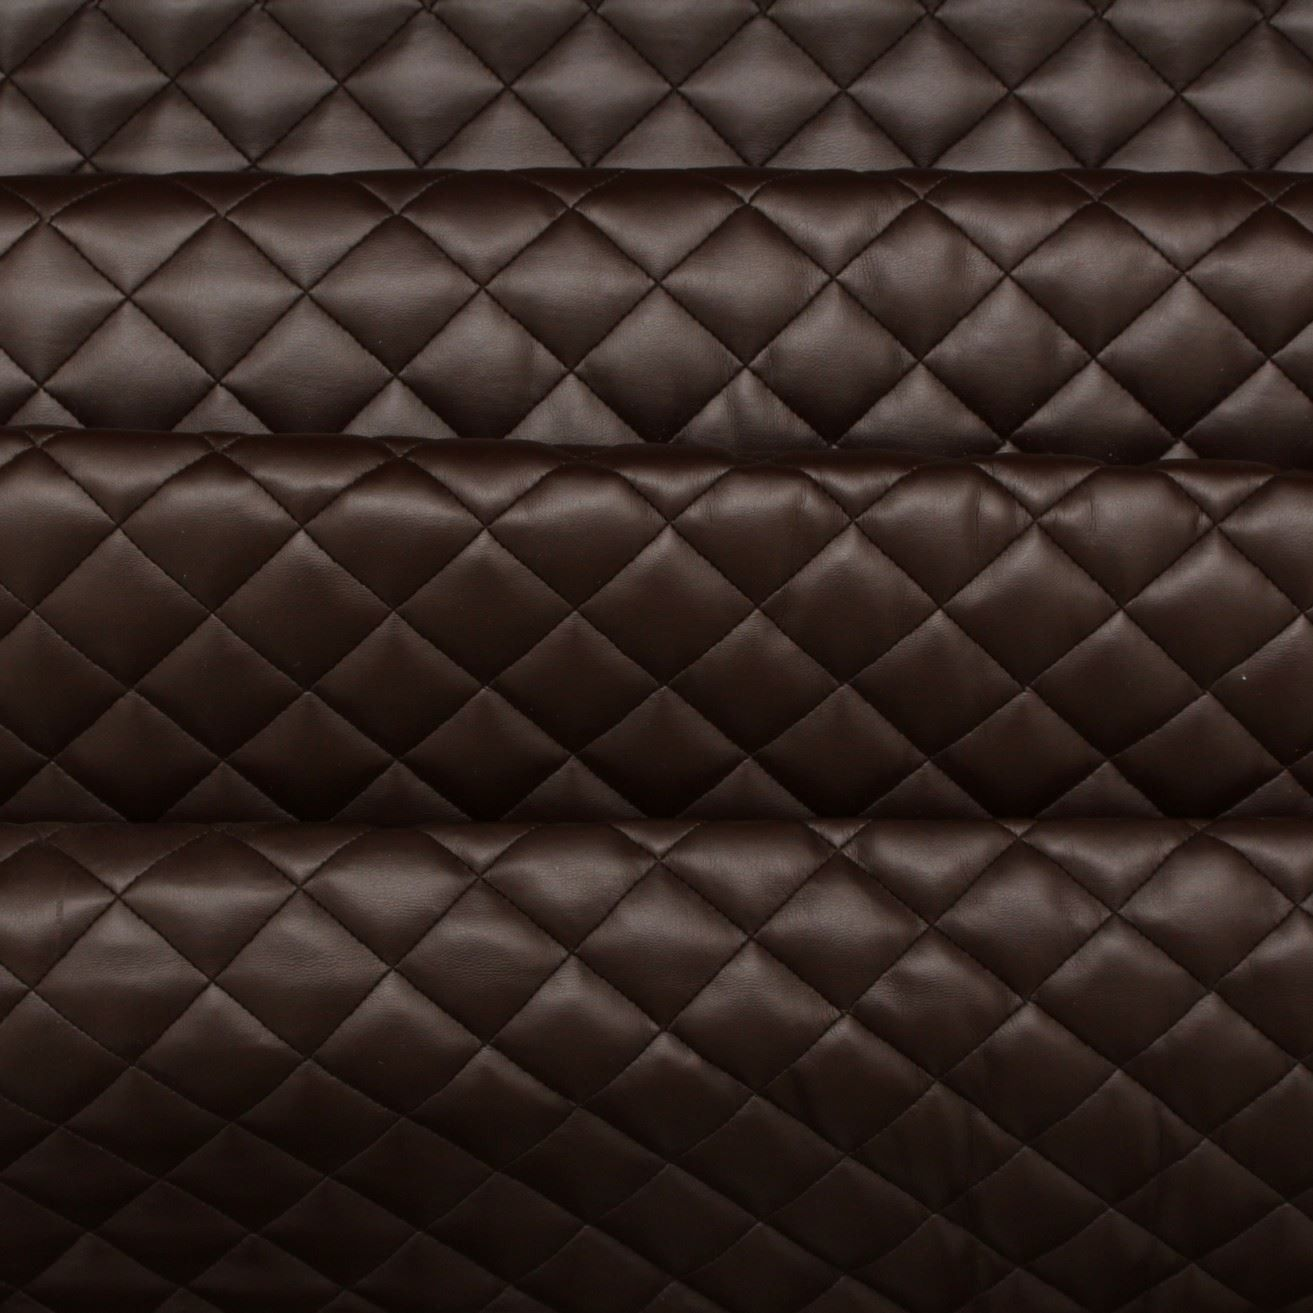 Diamond Quilted Padded Faux Leather Fabric Leather